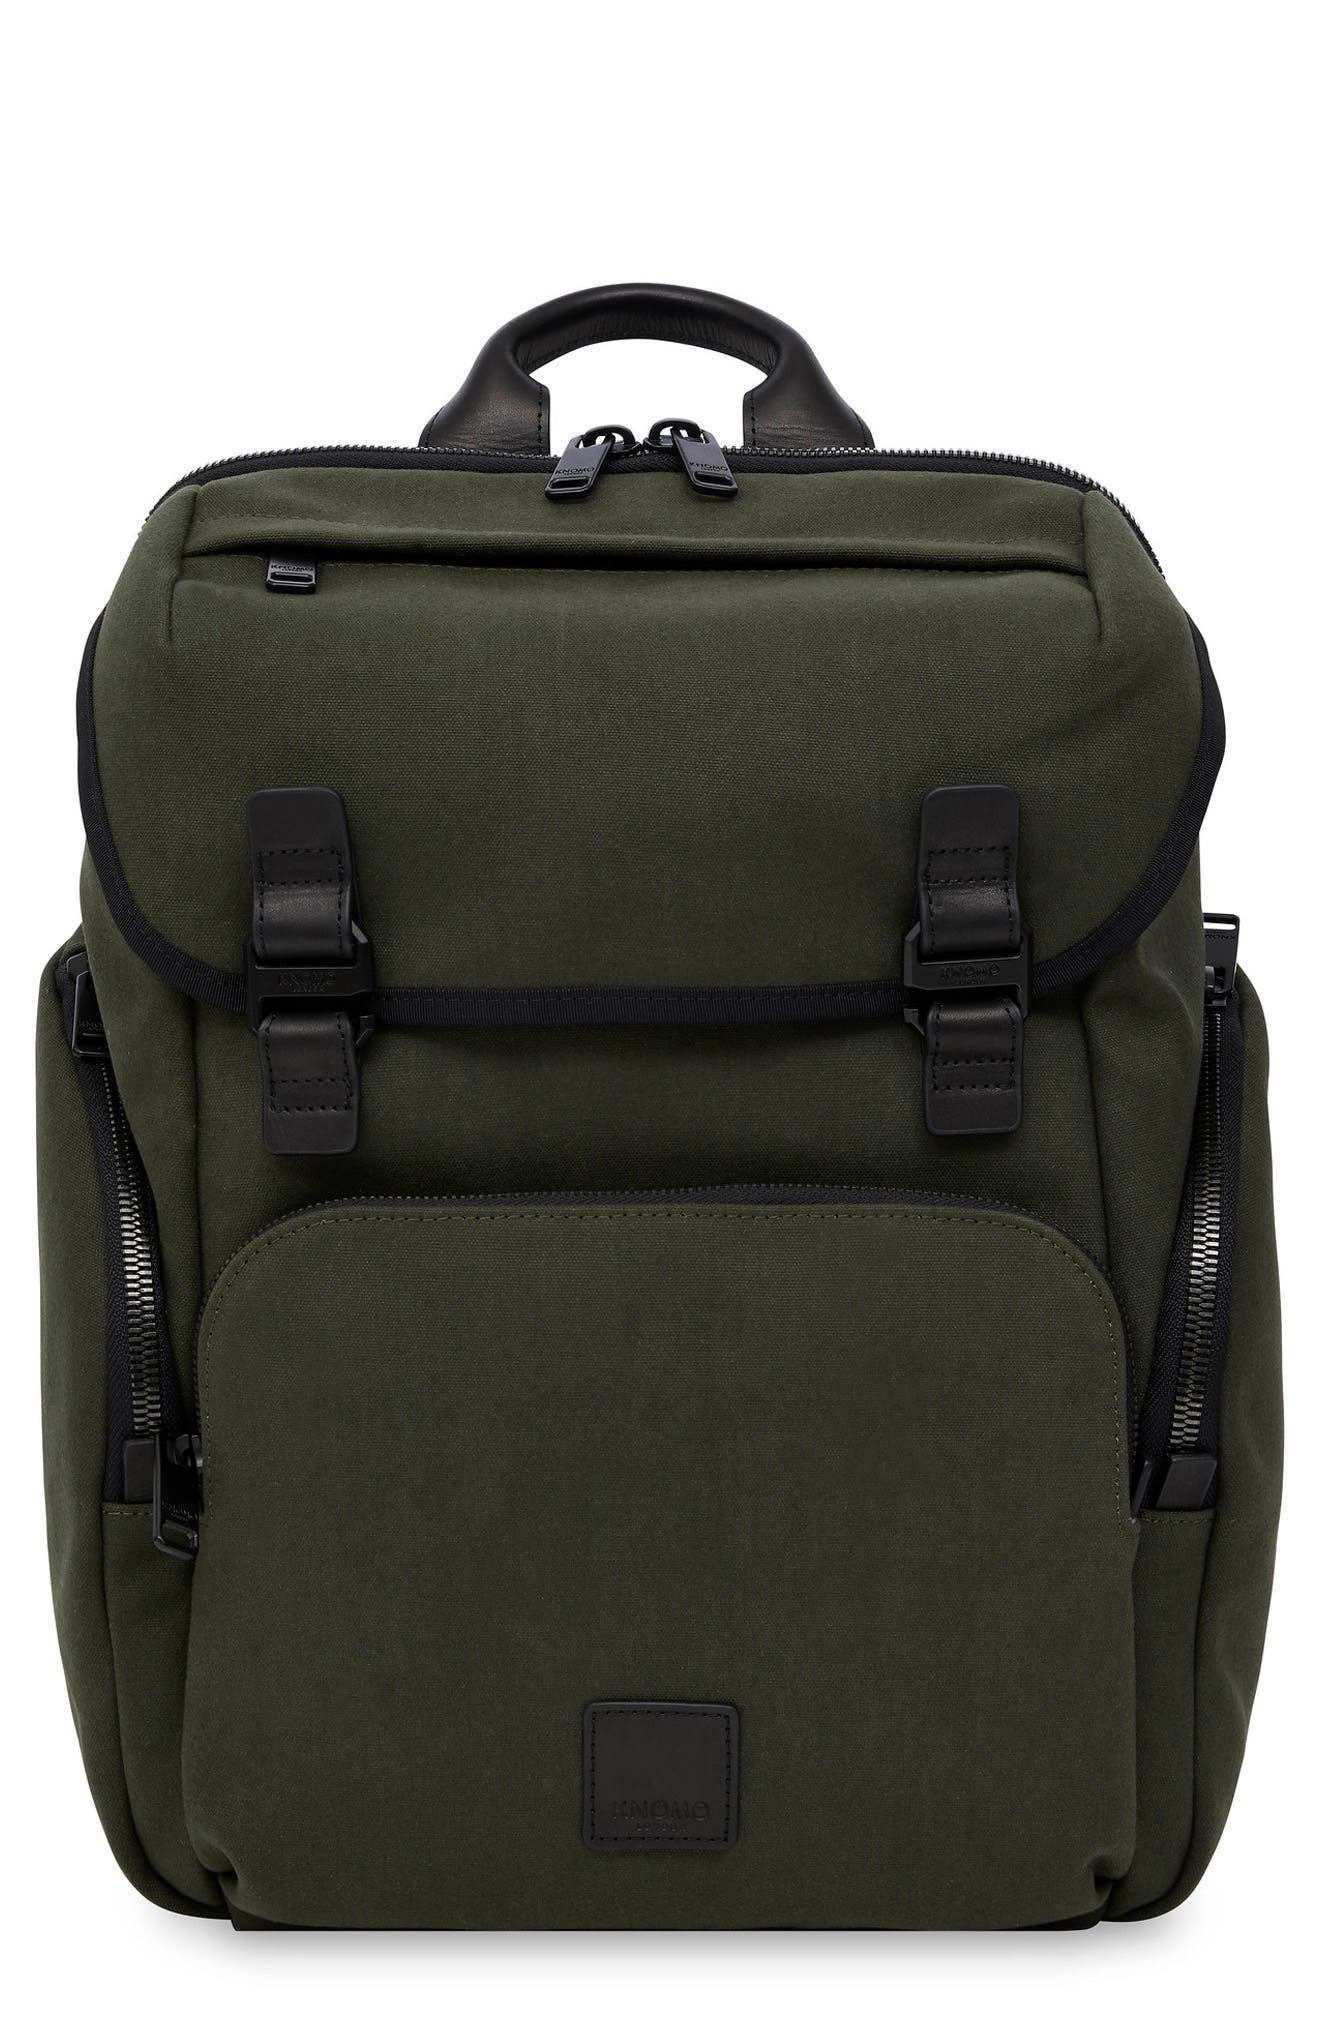 5872410d715f Knomo Fulham Thurloe Waxed Canvas Backpack With Rfid Pocket - Green